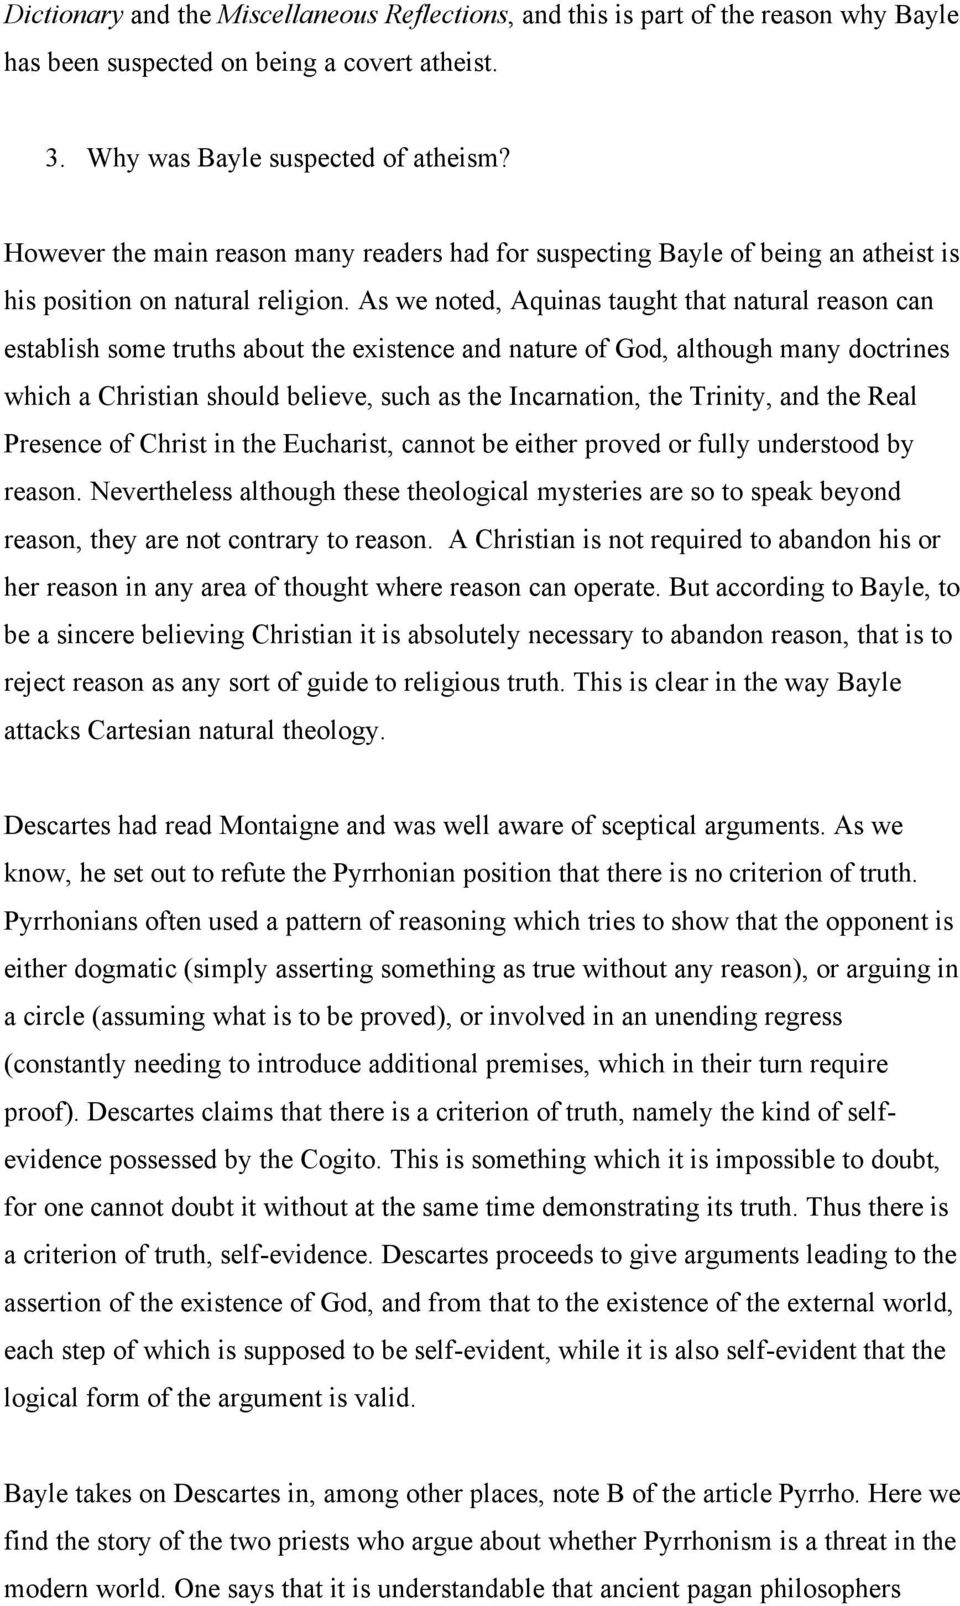 As we noted, Aquinas taught that natural reason can establish some truths about the existence and nature of God, although many doctrines which a Christian should believe, such as the Incarnation, the